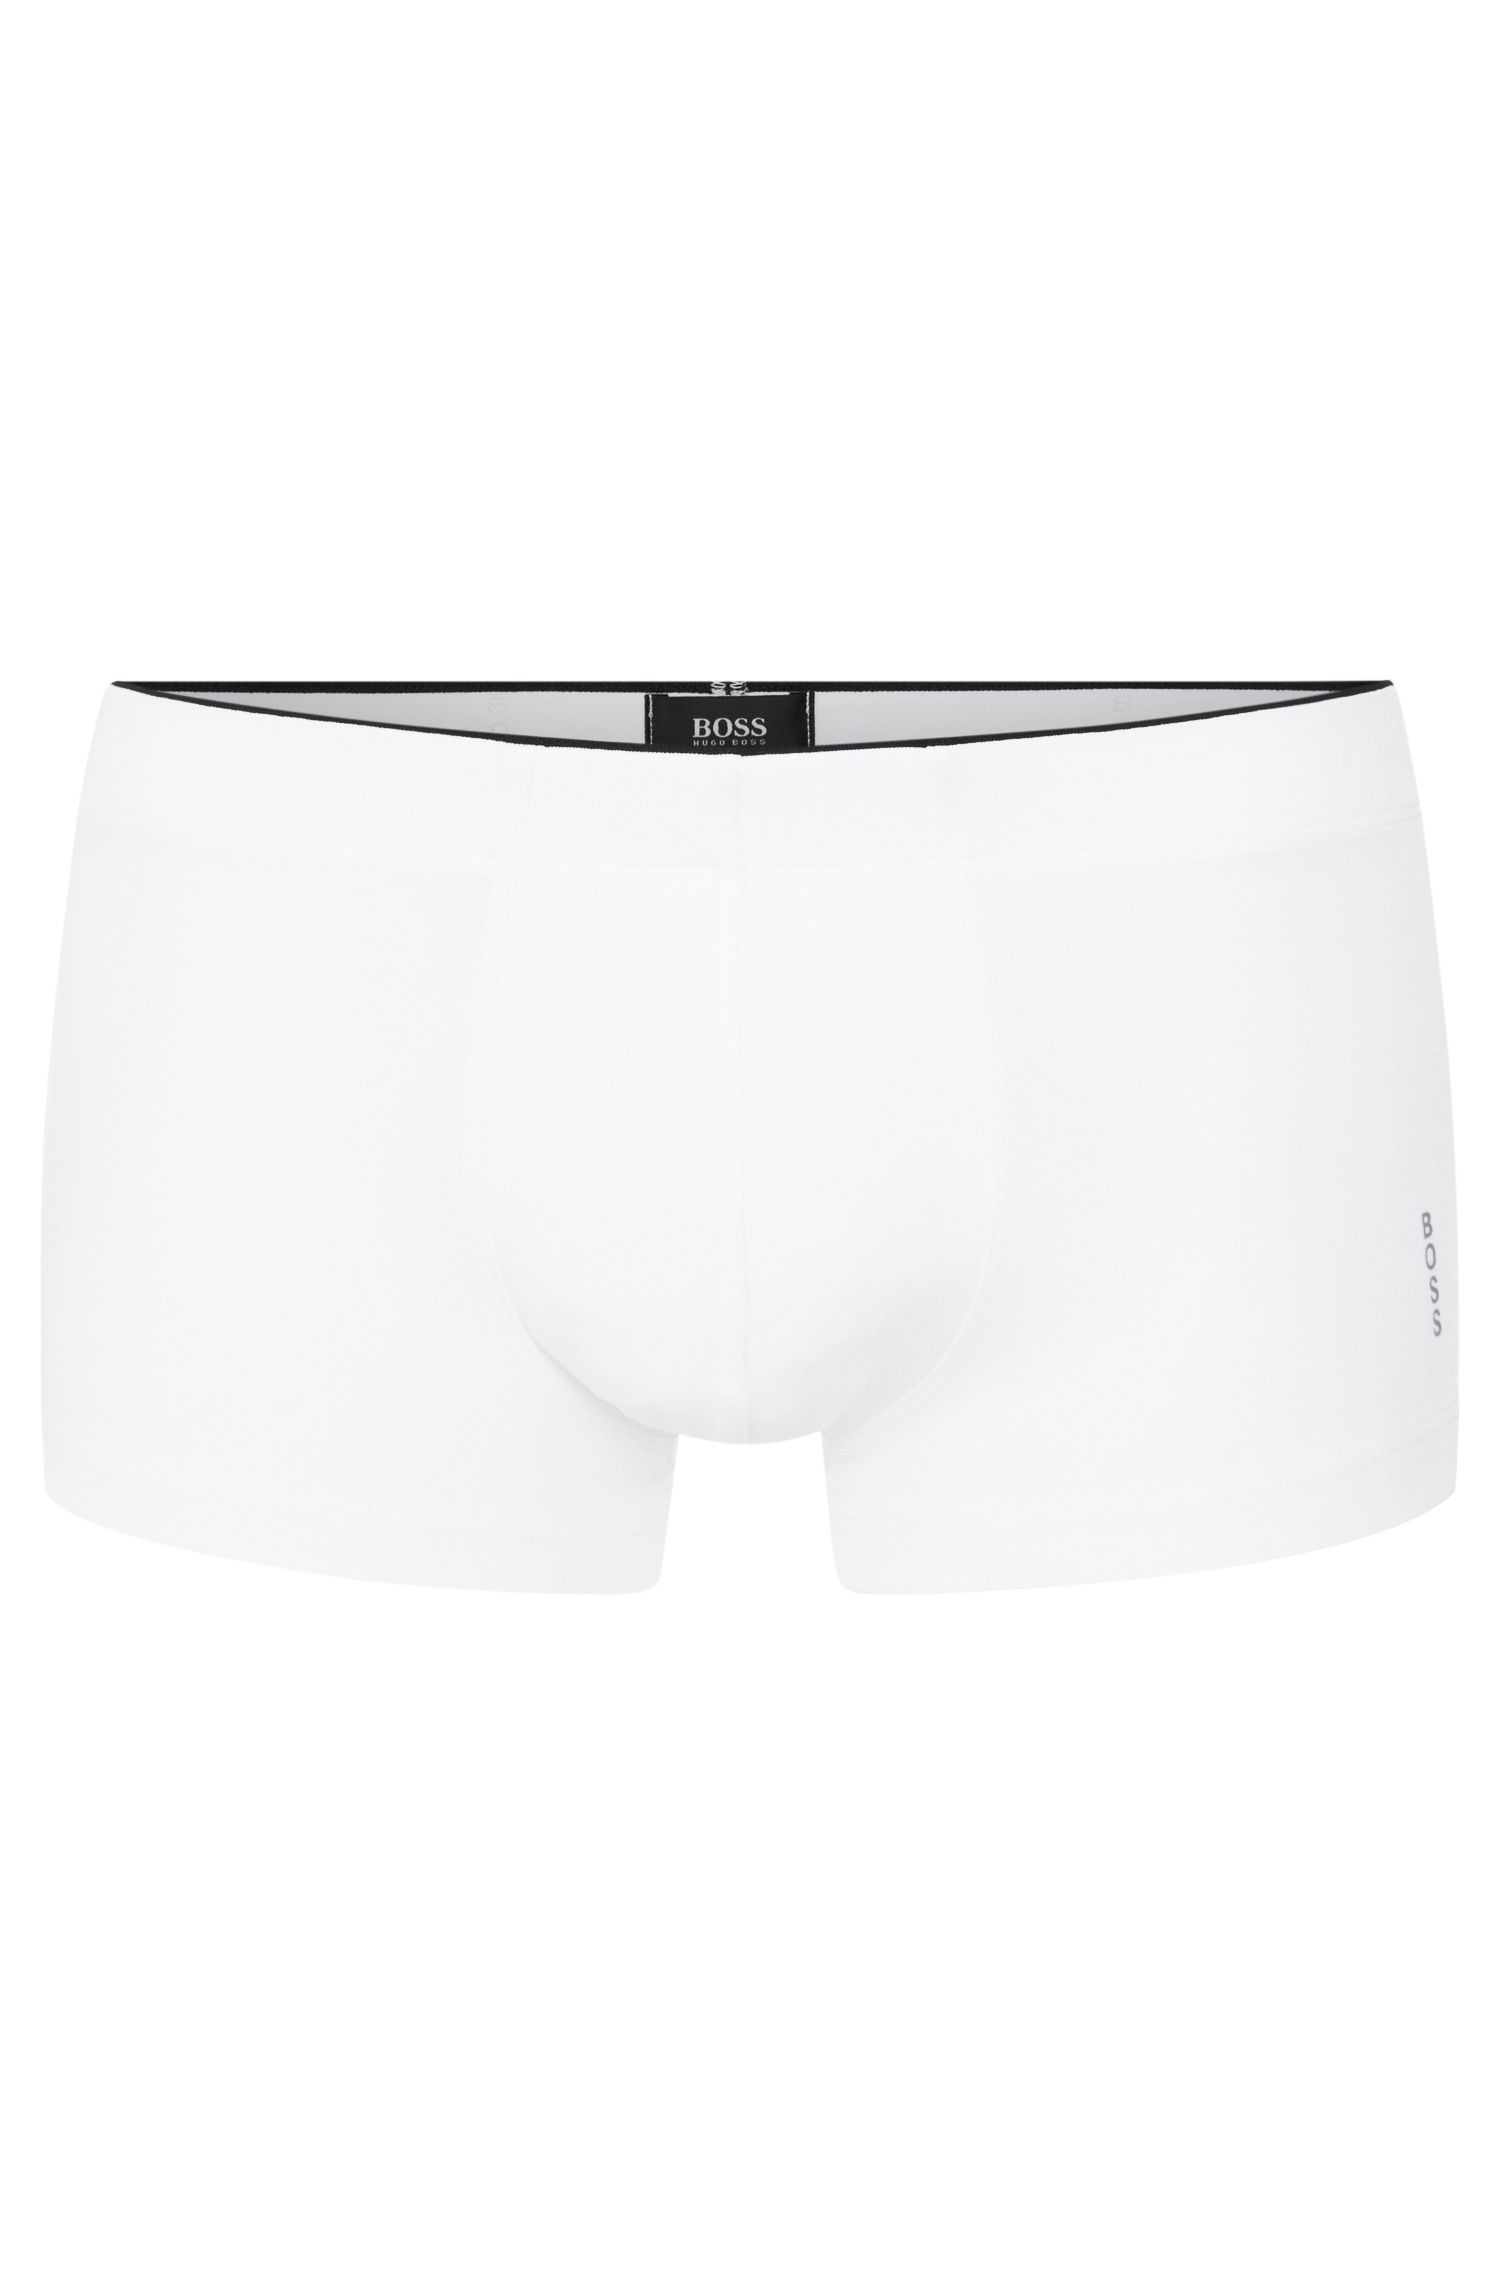 Regular-rise boxer briefs in premium microfibre